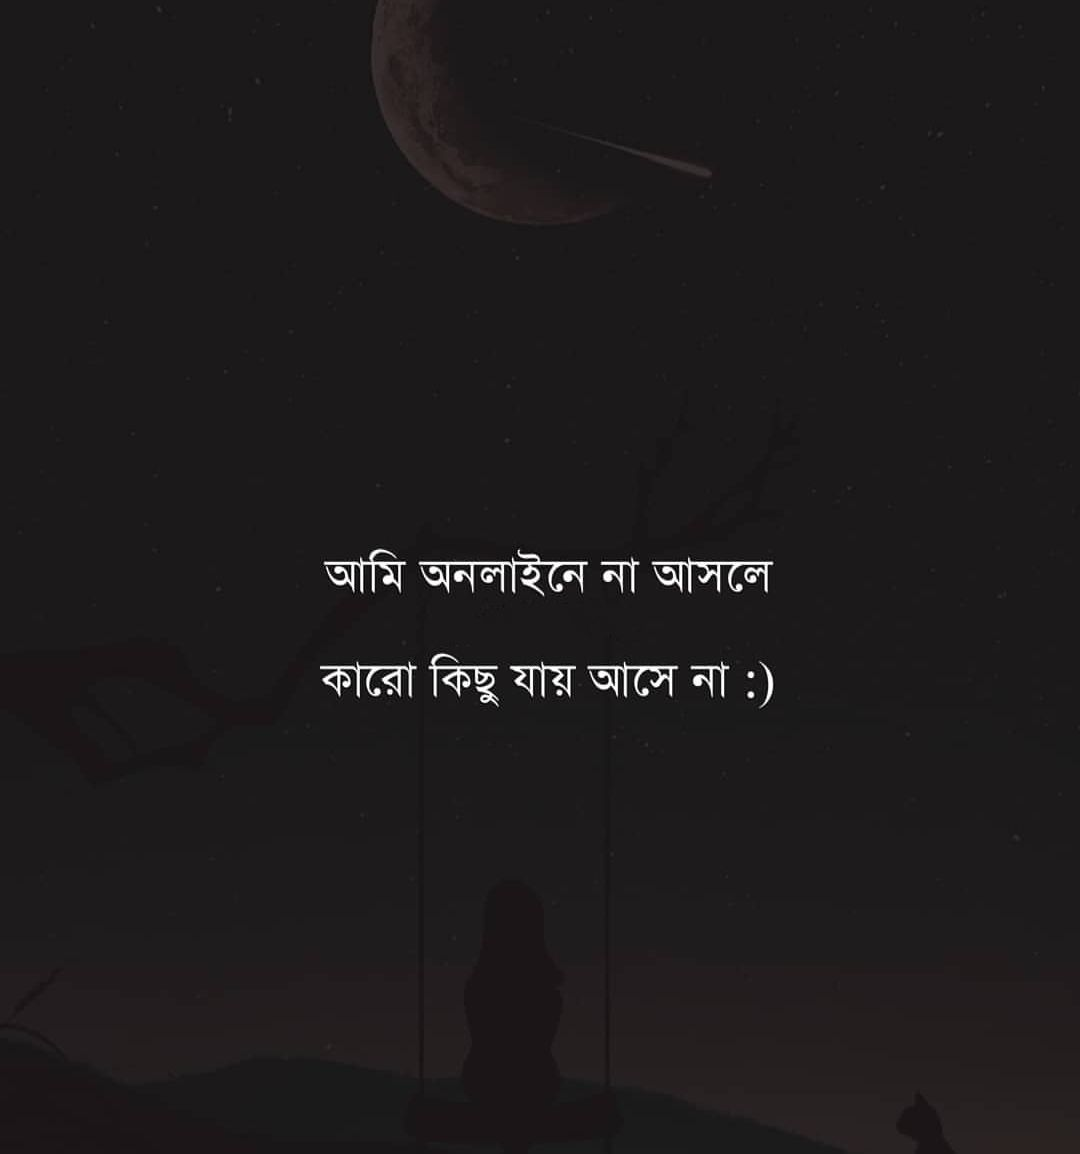 bengali sad song whatsapp status